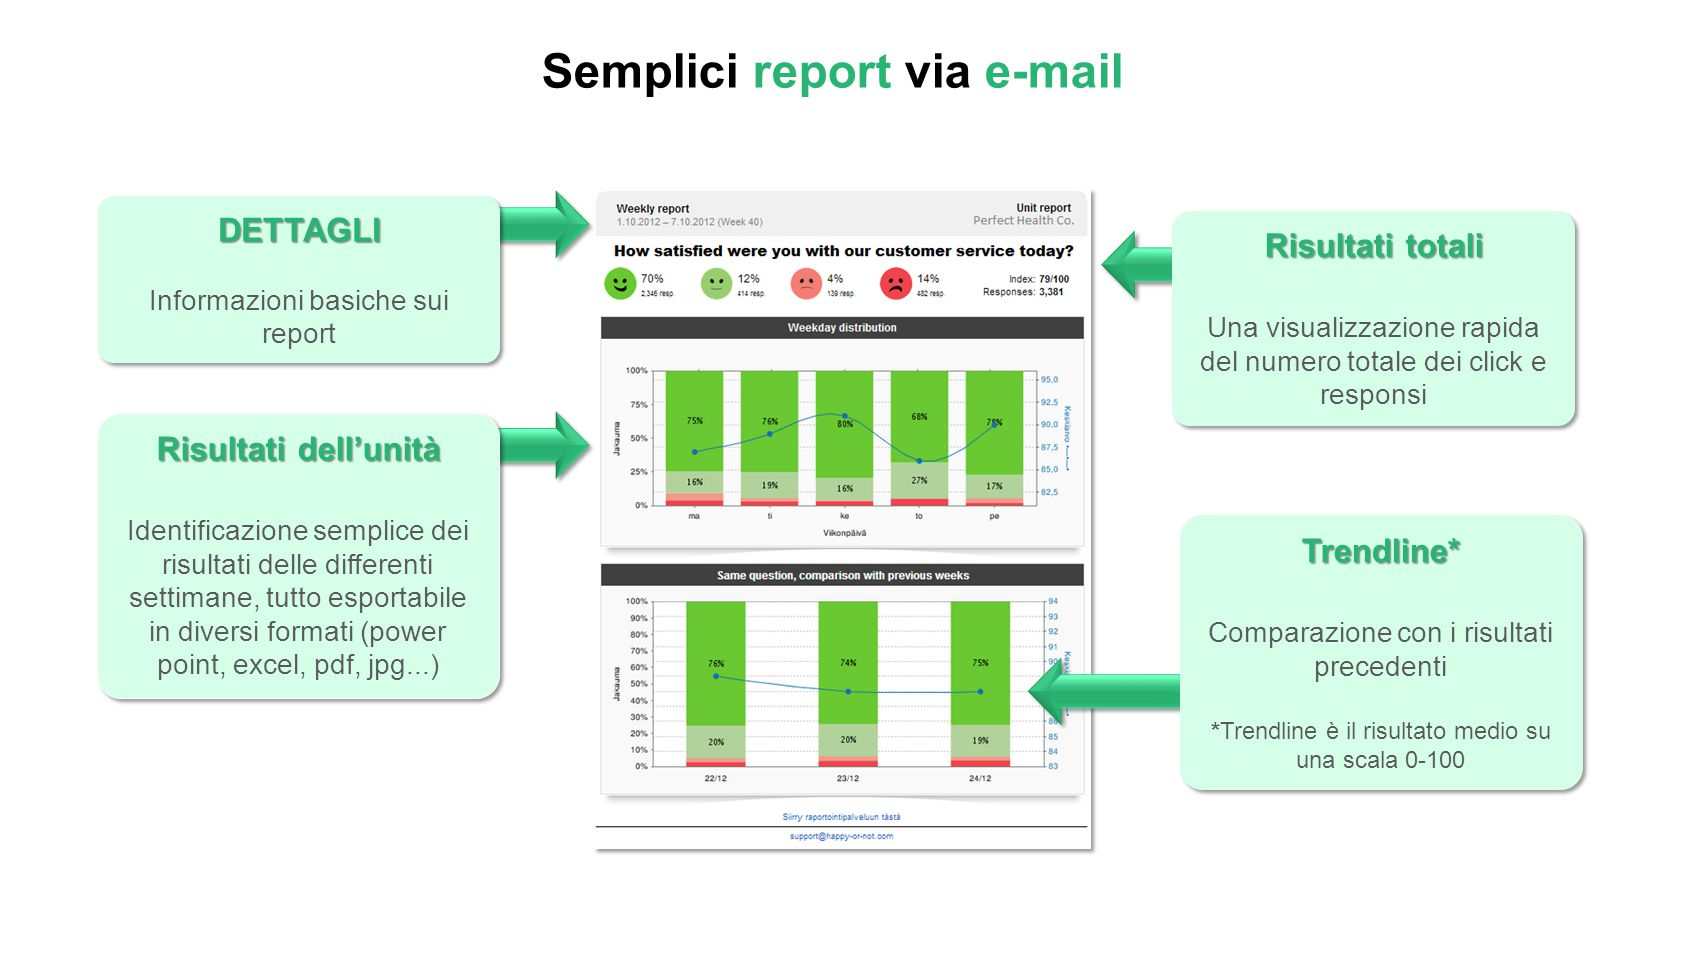 Semplici report via e-mail